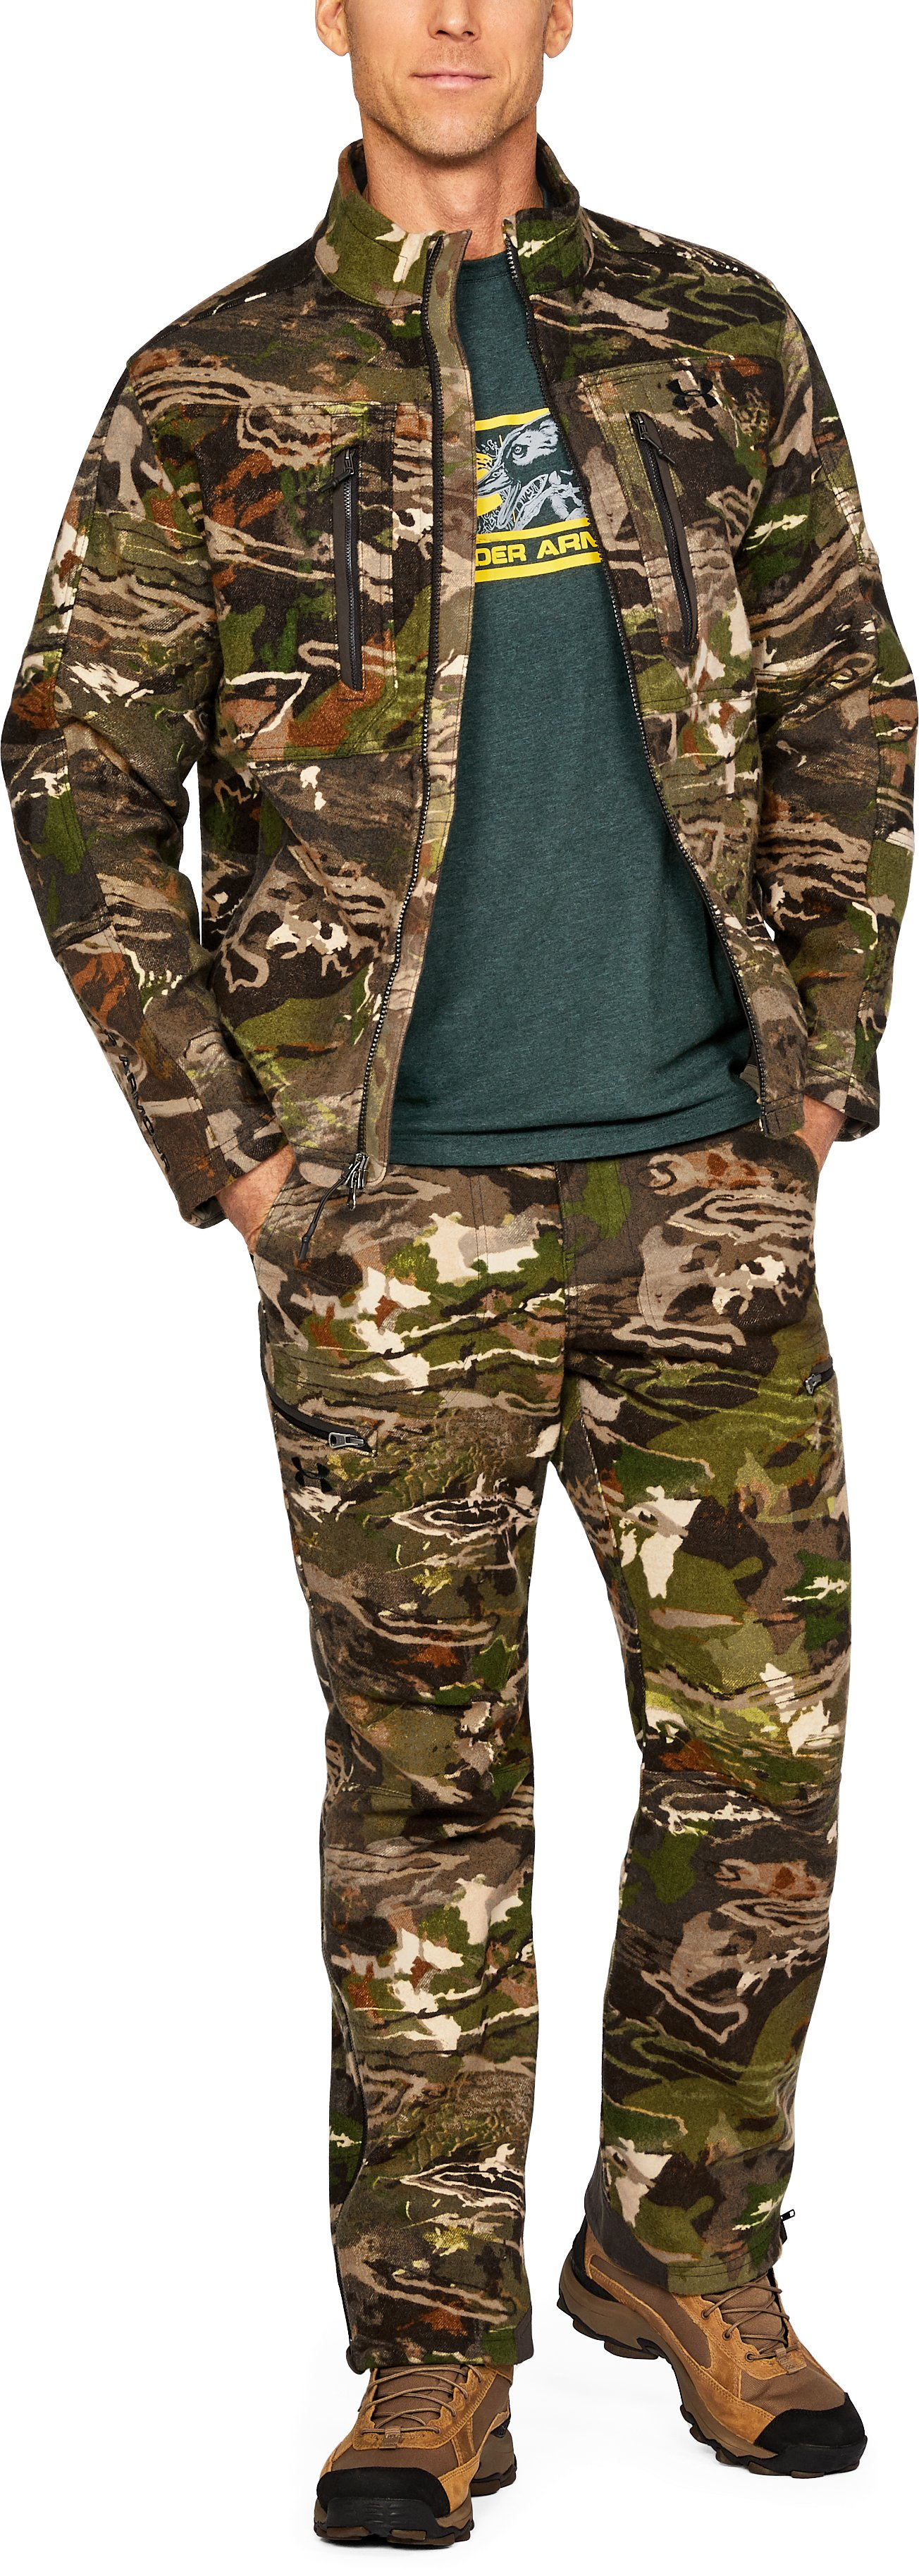 Men's UA Stealth Reaper Mid Season Wool Jacket, RIDGE REAPER® FOREST,